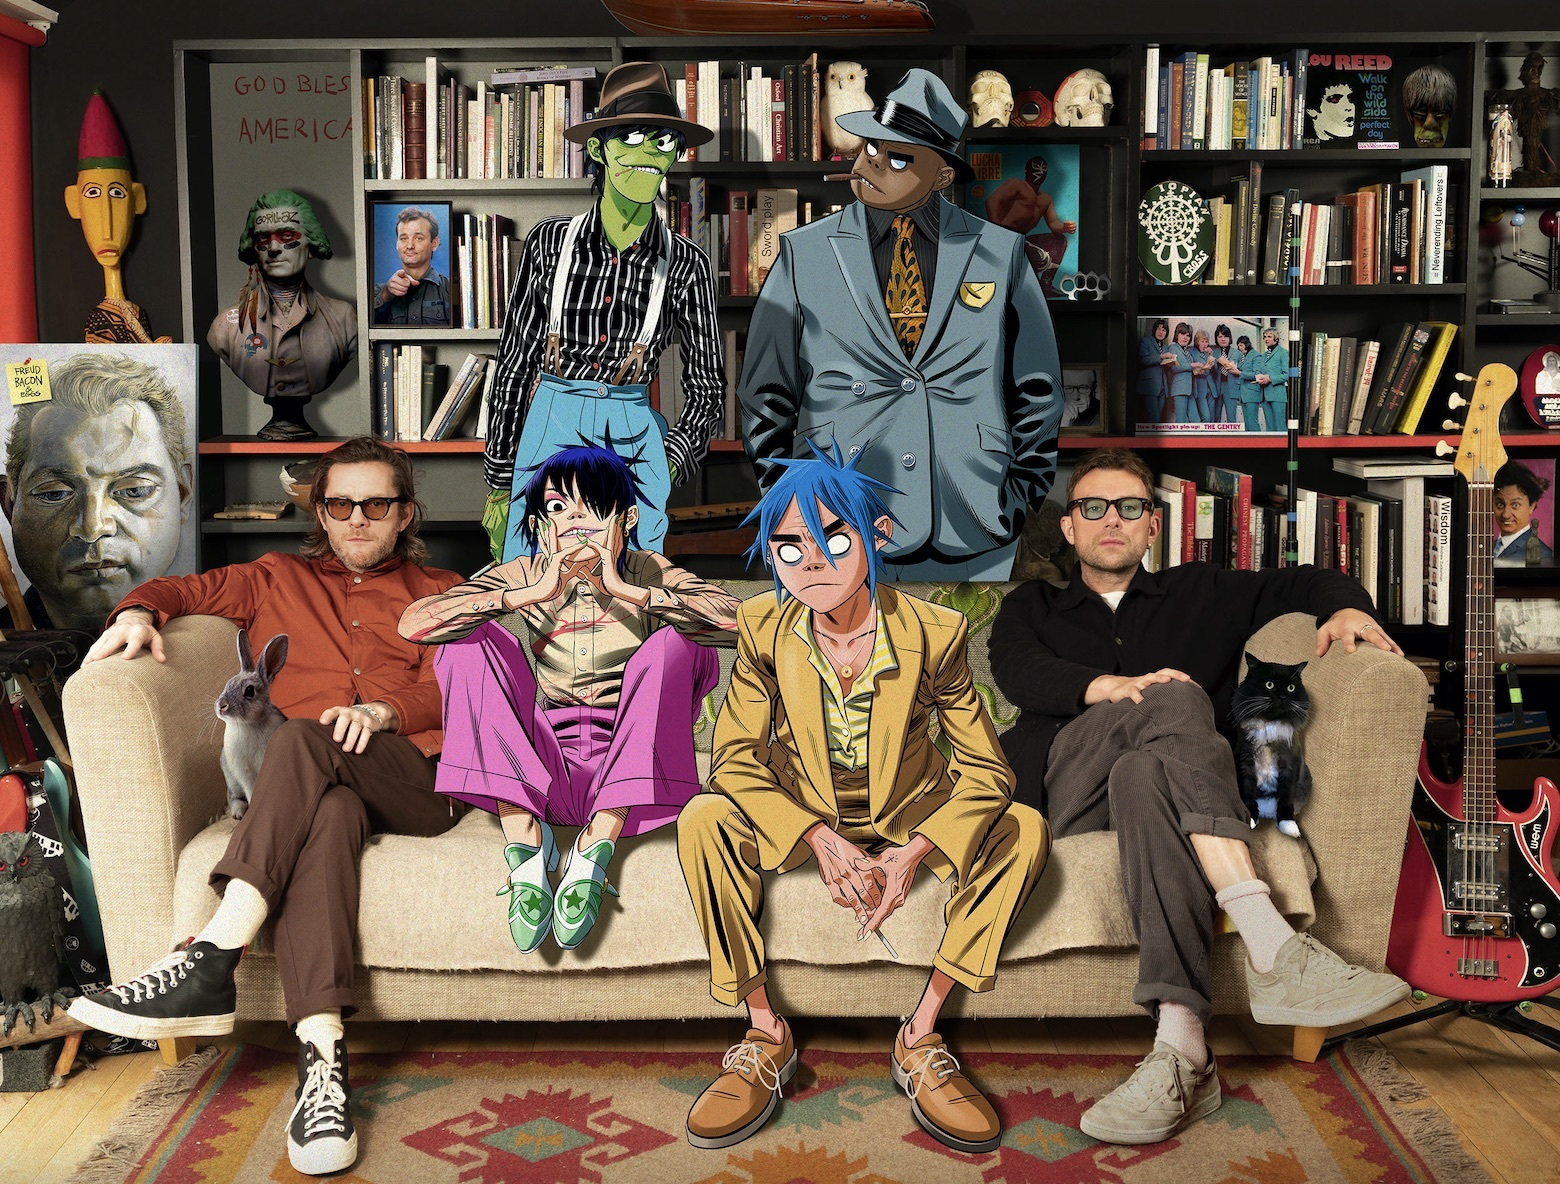 Planet Of The Apes: Gorillaz